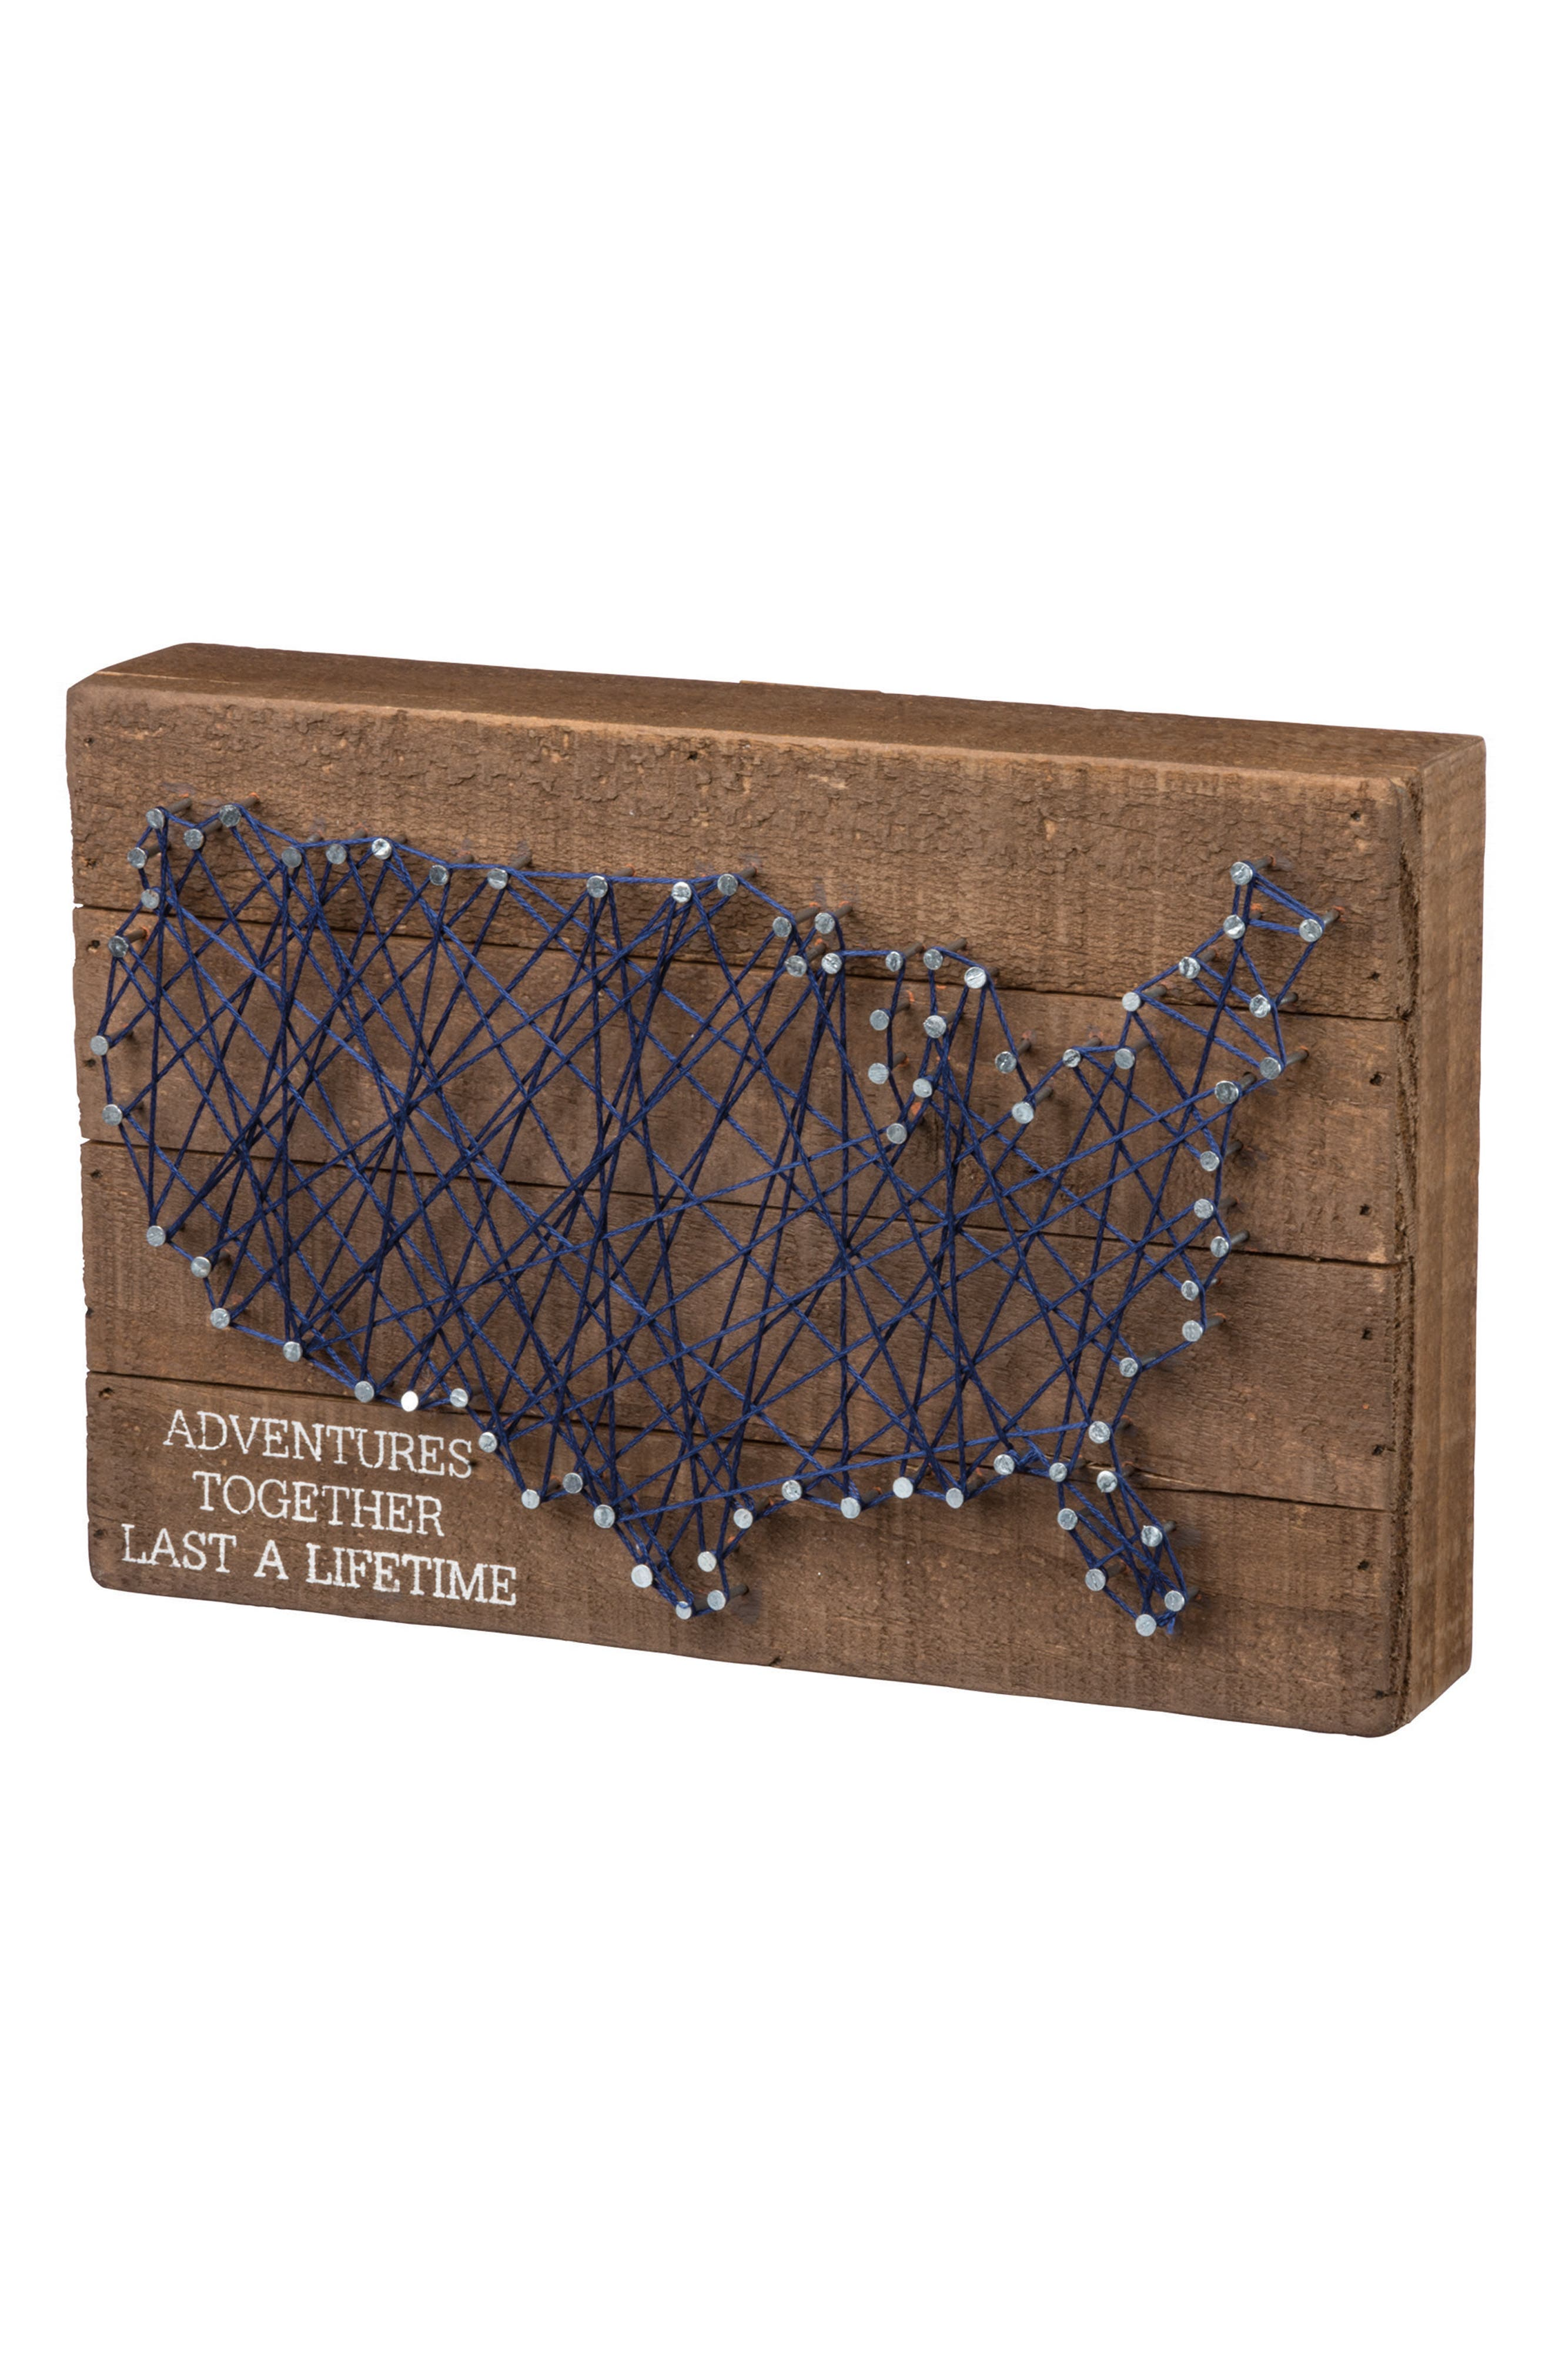 Primitives by Kathy Adventures Together Last a Lifetime String Art Box Sign